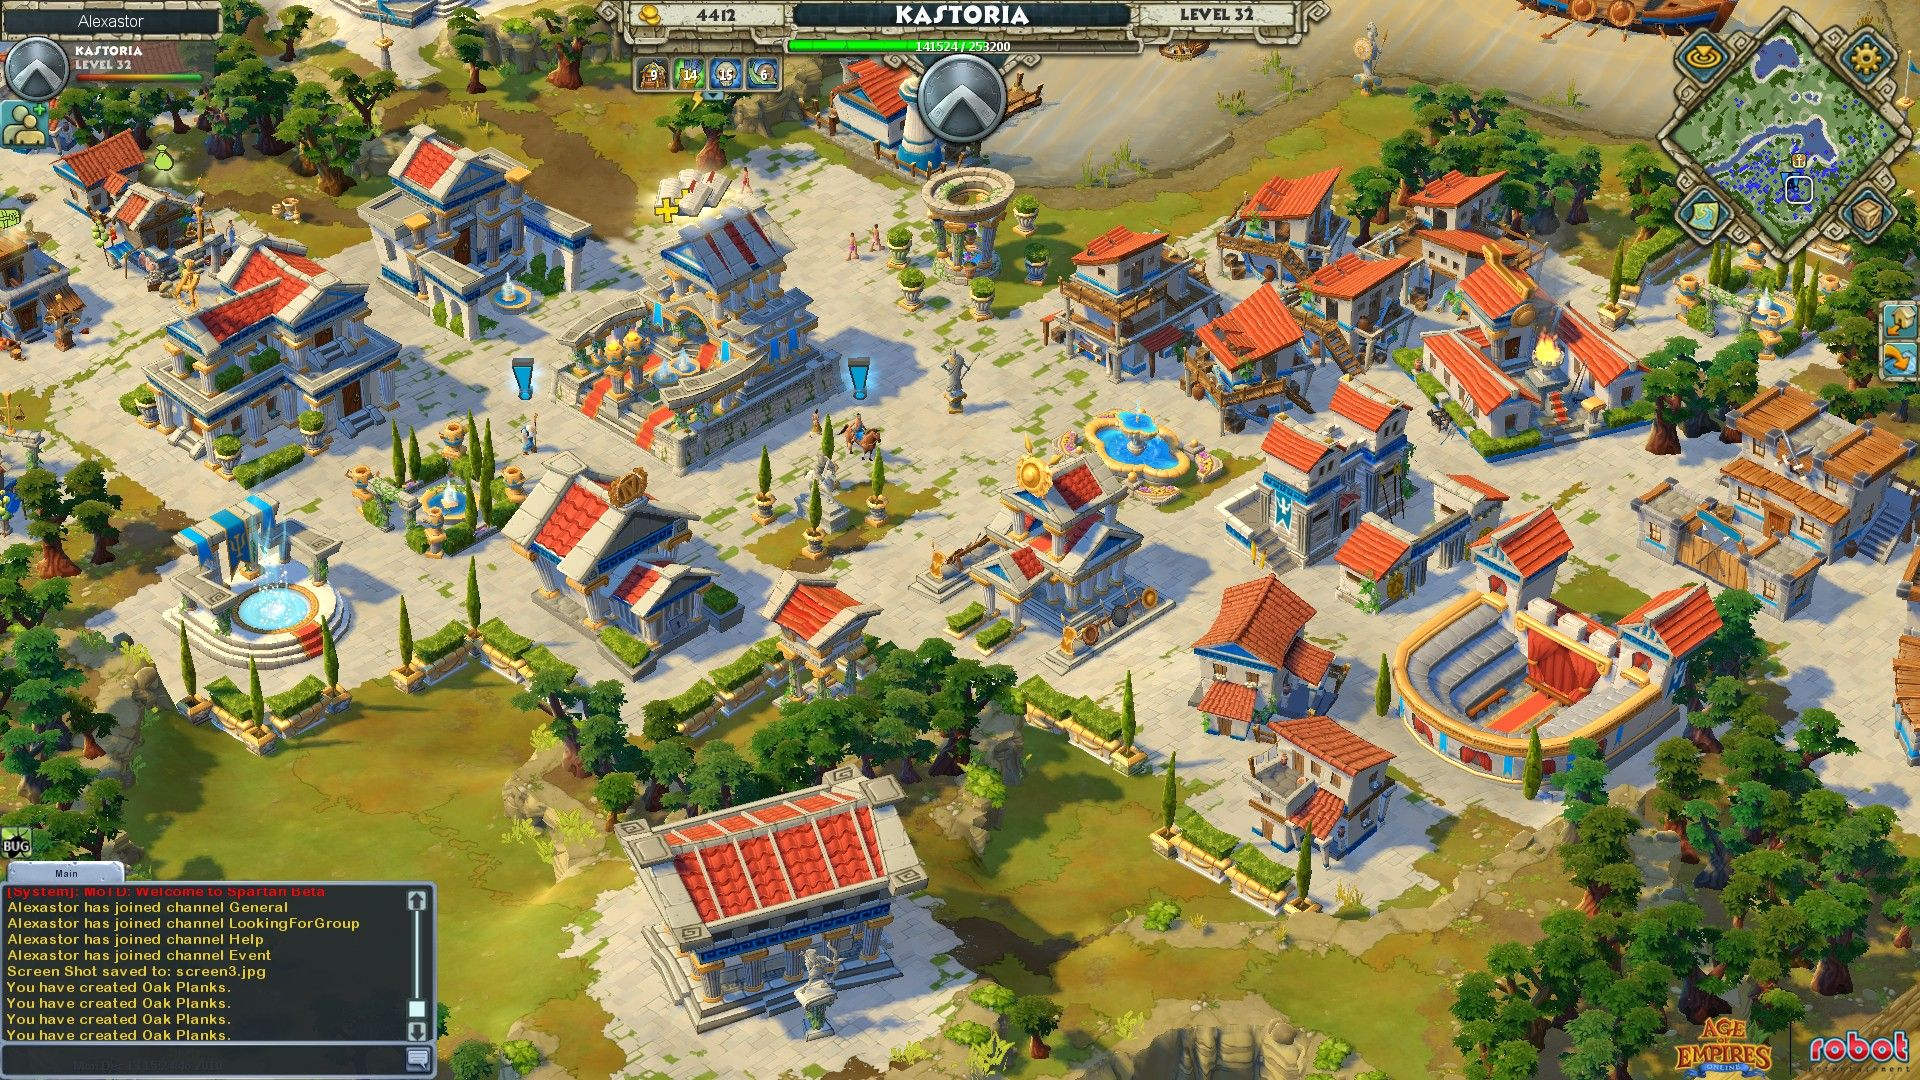 strategy-mmo-games-age-of-empires-online-city-screenshot.jpg